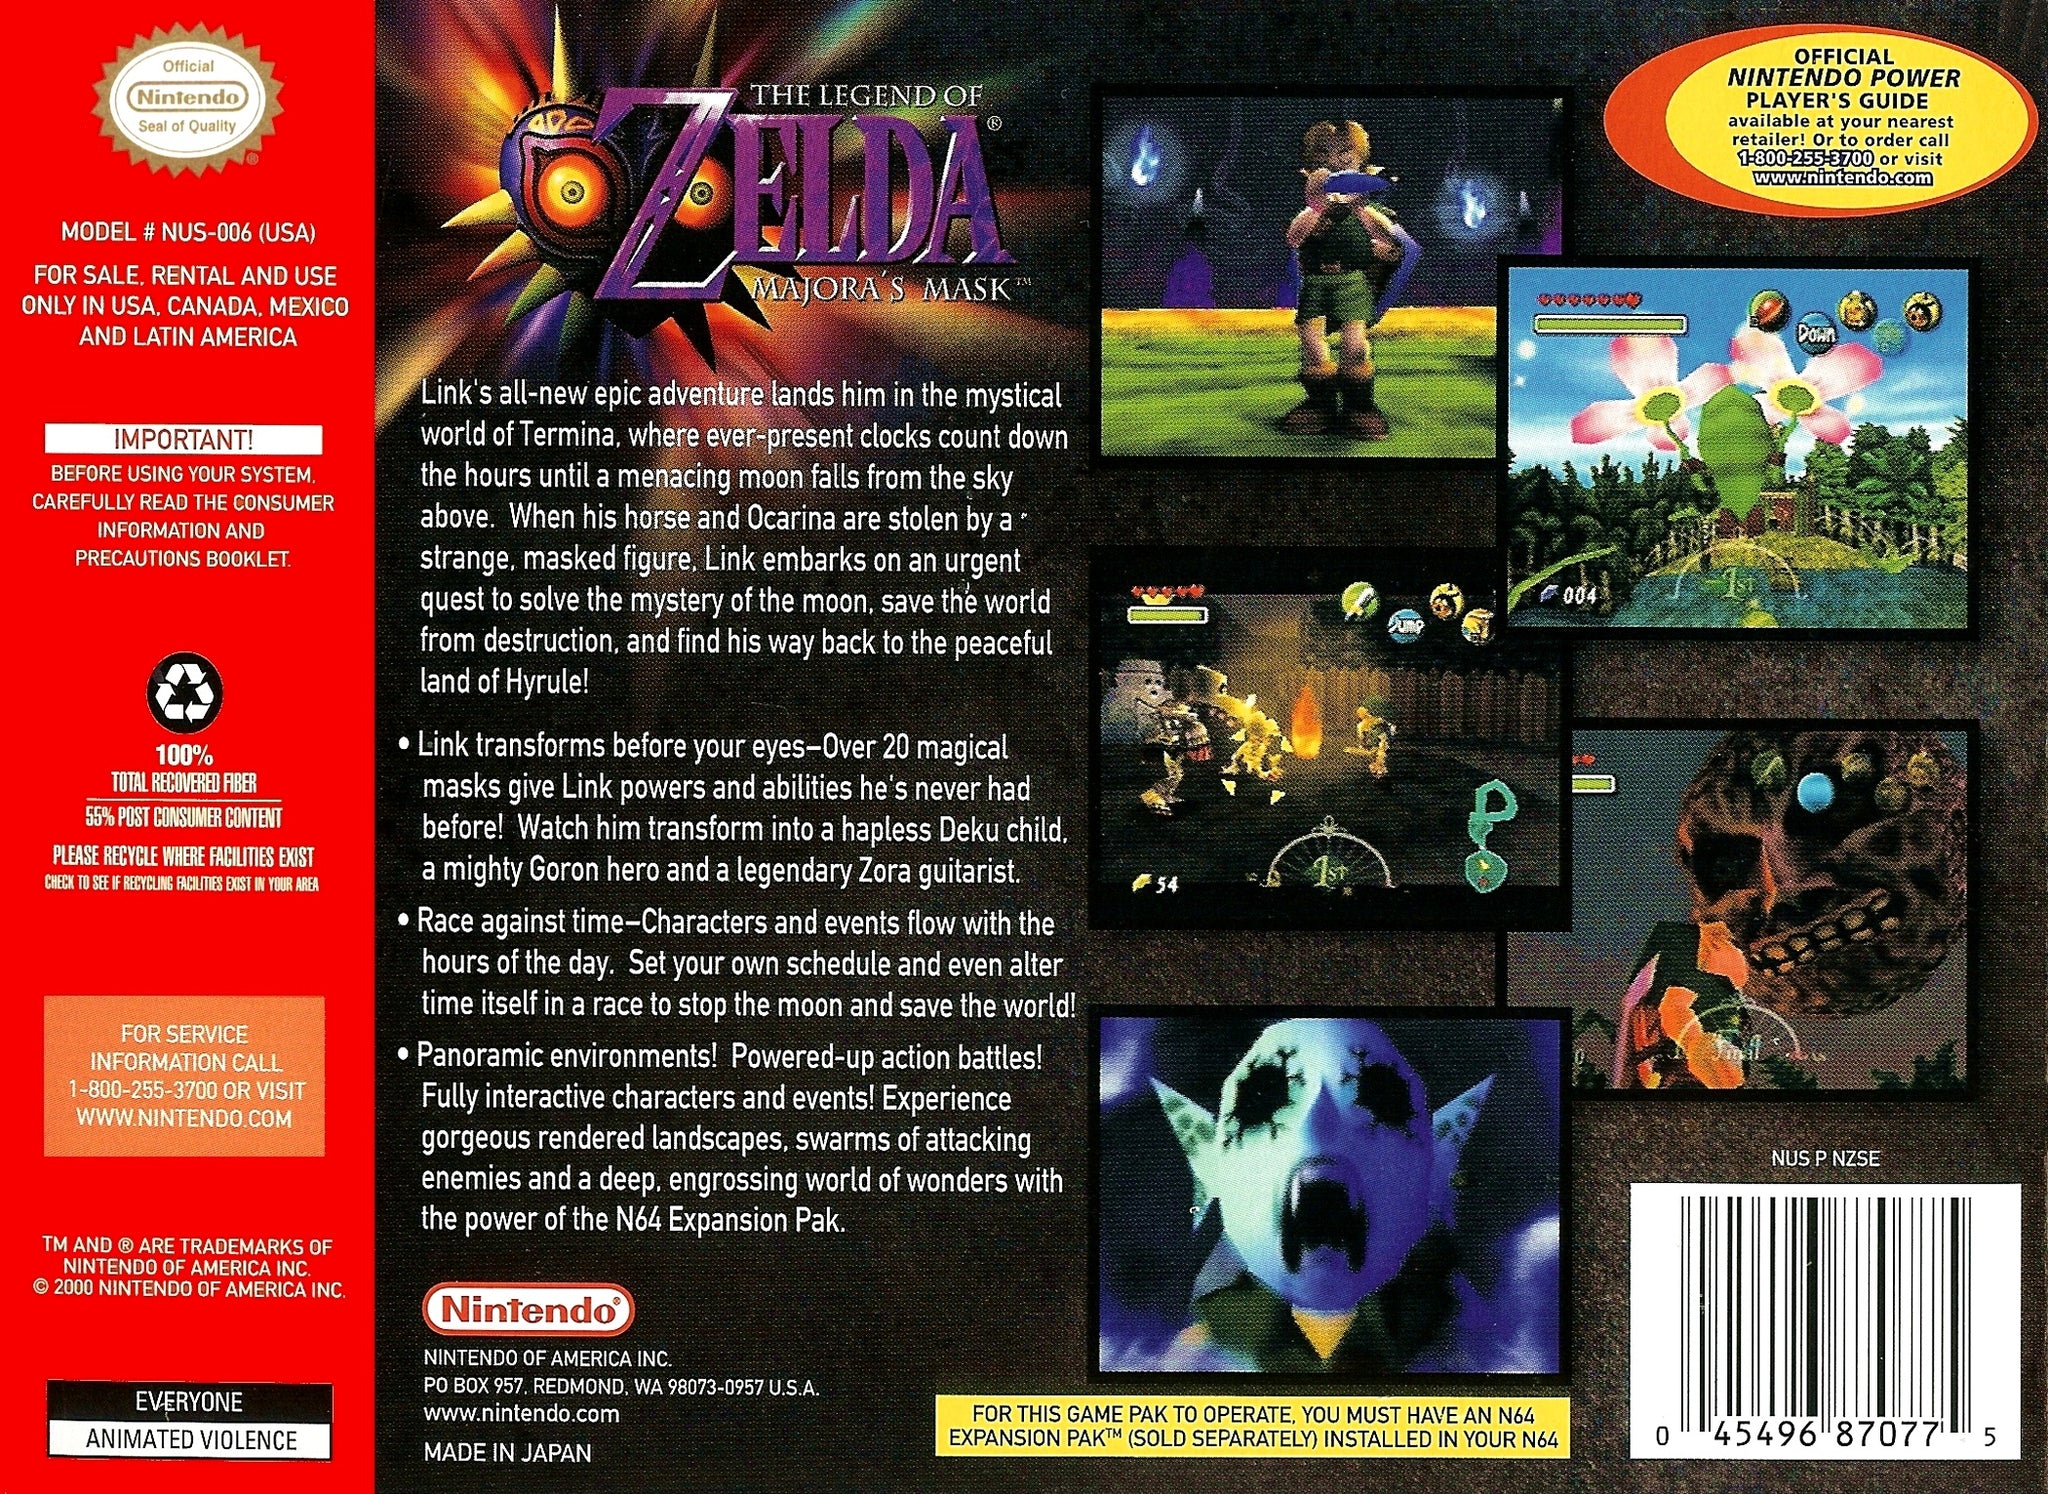 The Legend of Zelda: Majora's Mask (Holographic) - Authentic Nintendo 64 (N64) Game Cartridge